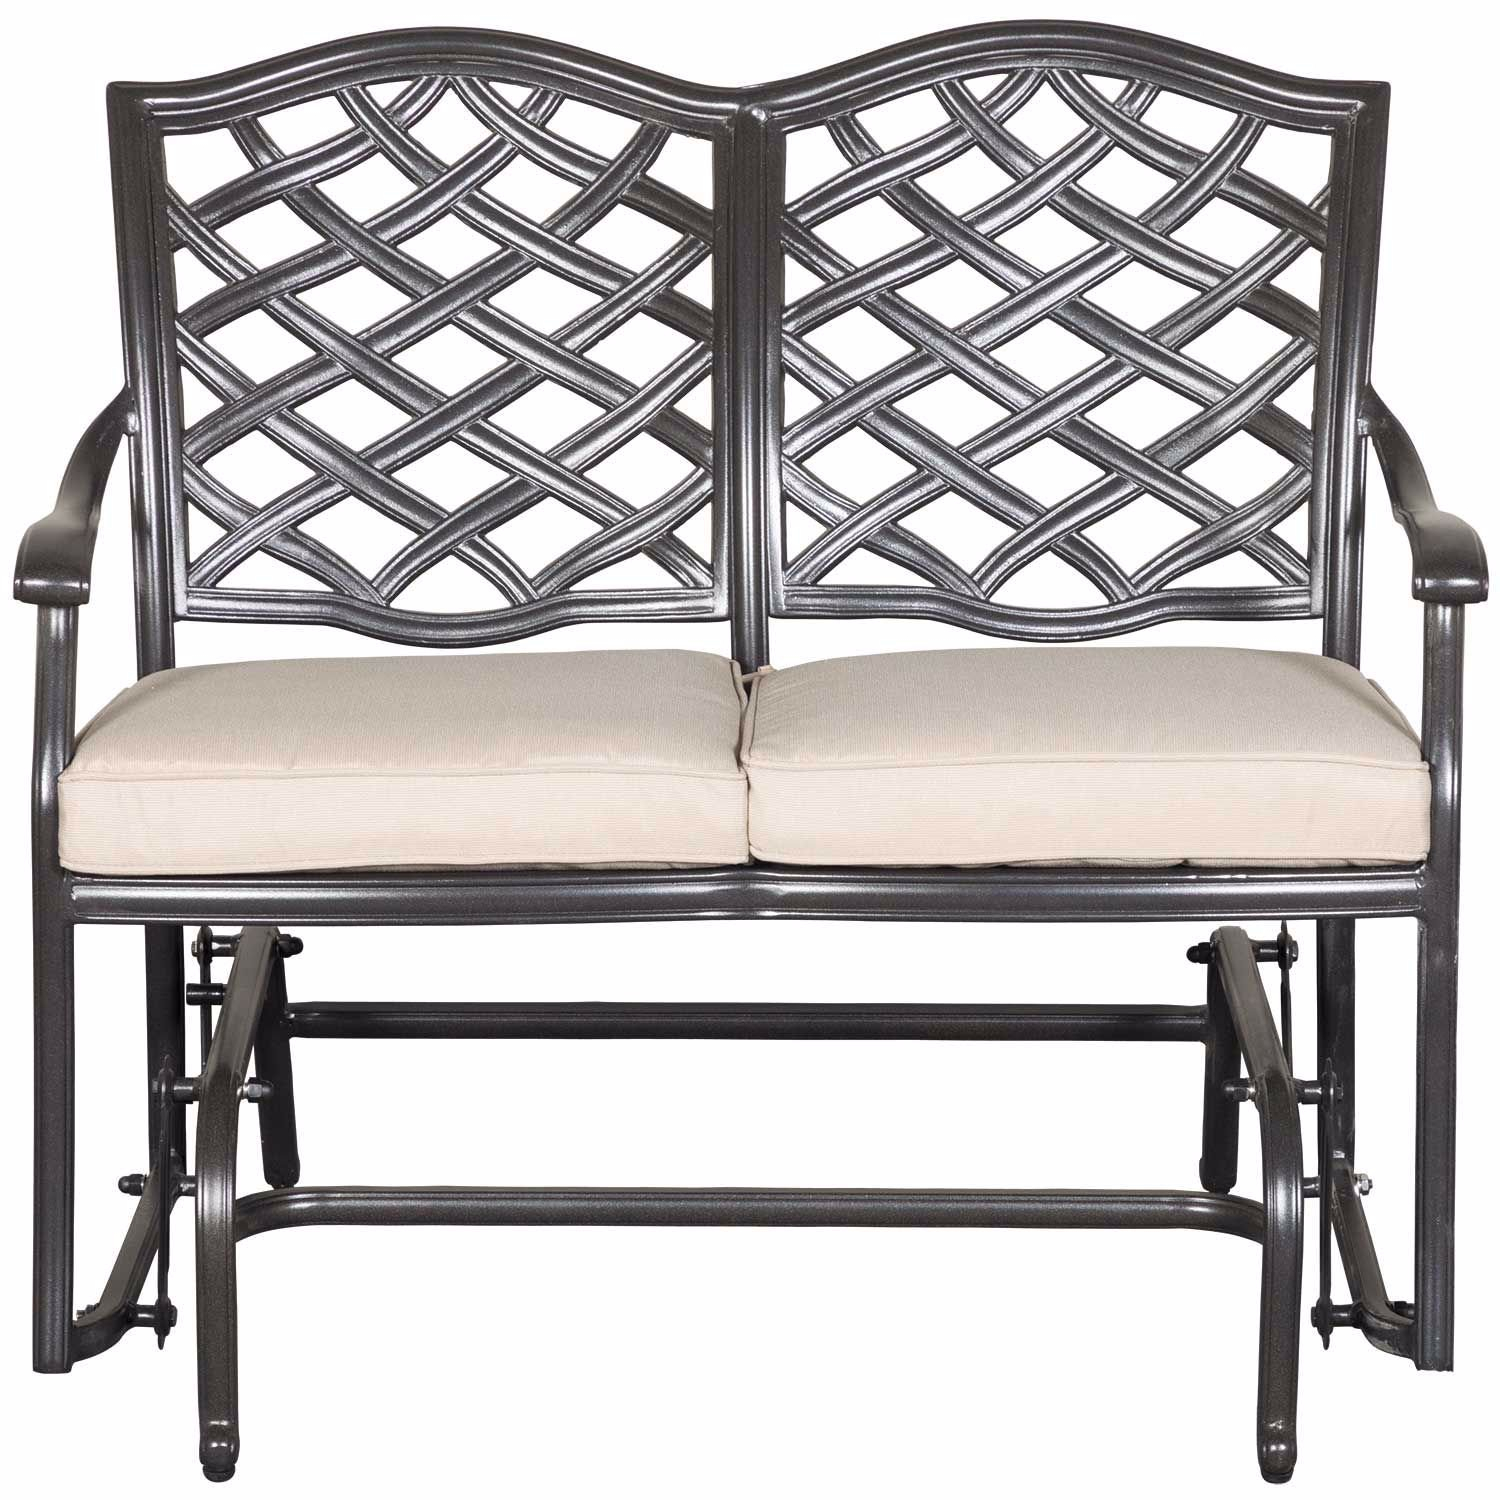 Halston Patio Glider Loveseat With Cushions Within Speckled Glider Benches (View 12 of 25)